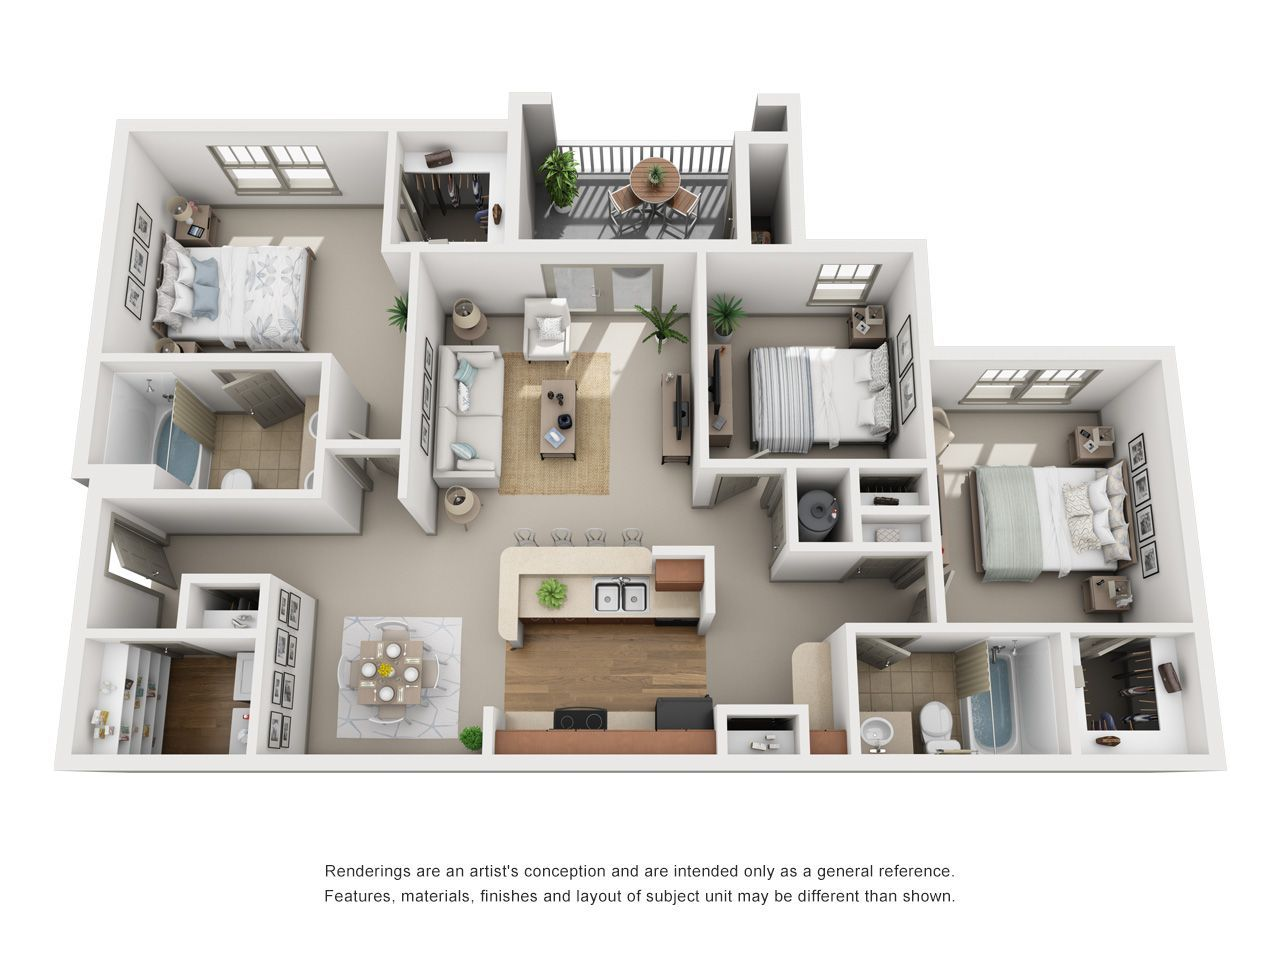 Three Bedroom 3 Bedroom Apartment Interior Design In 2021 Apartment Layout Apartment Floor Plans Sims House Plans